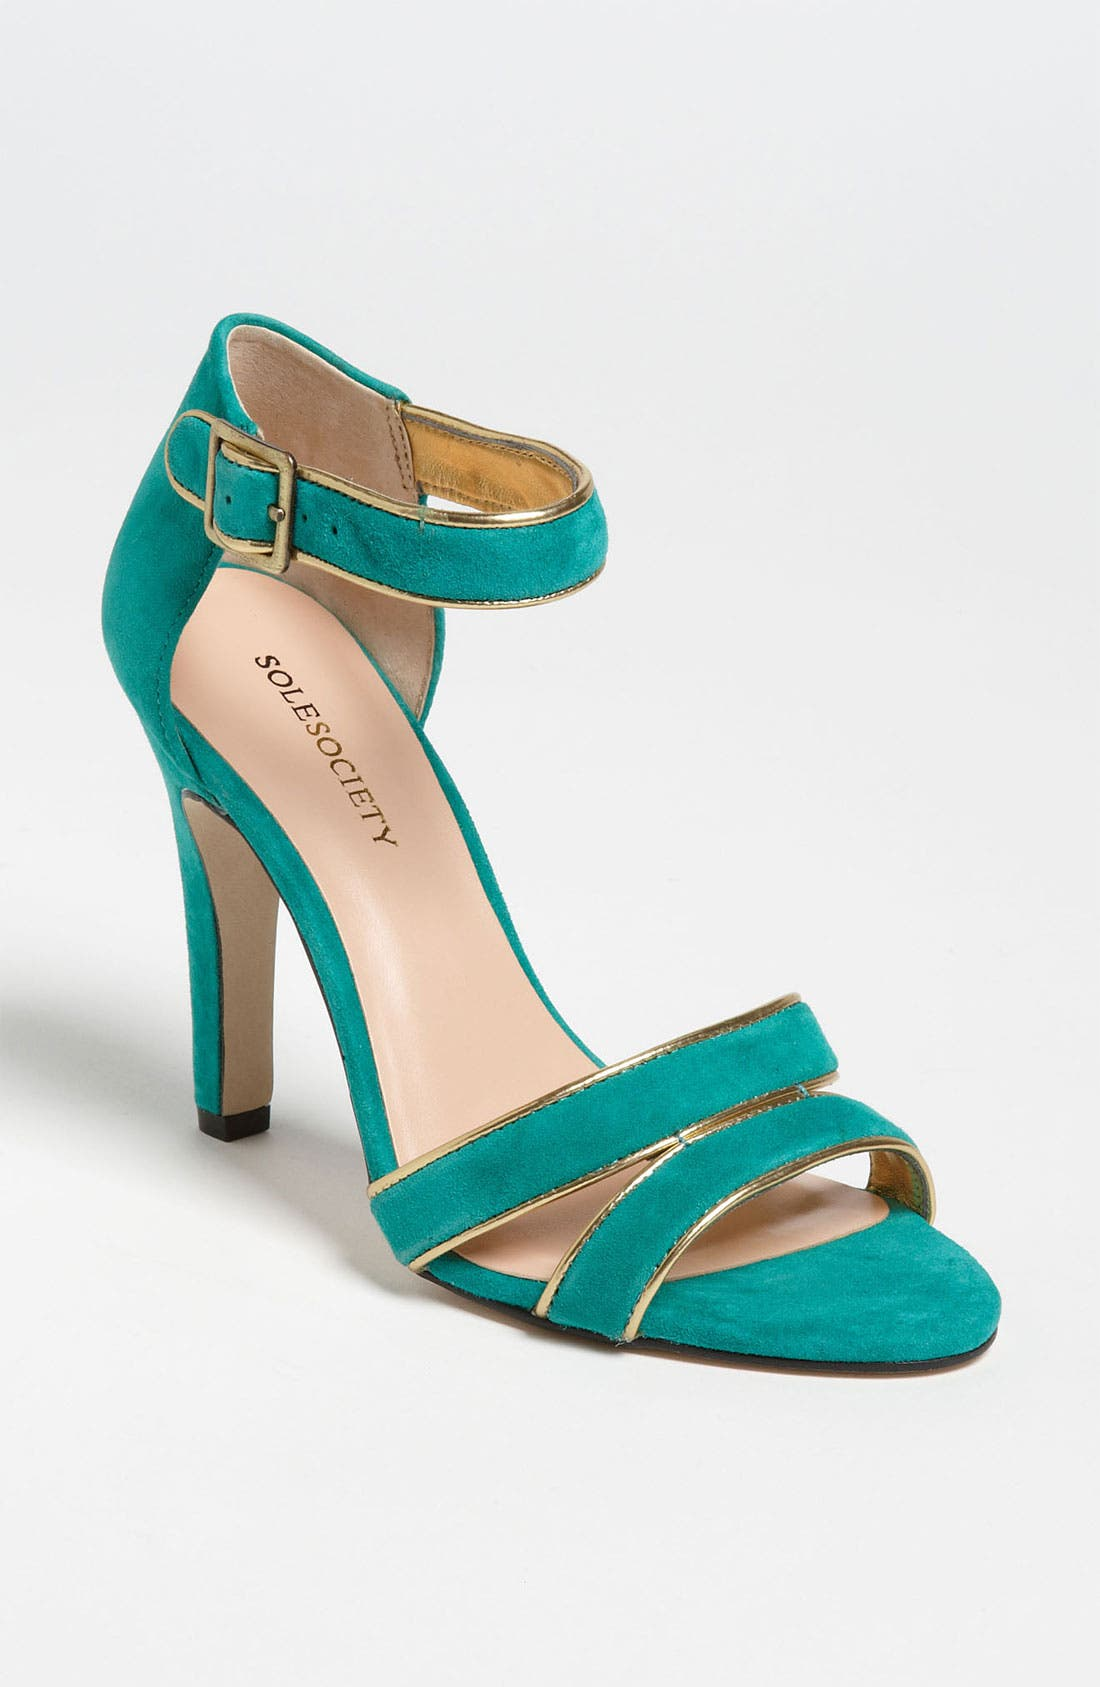 Alternate Image 1 Selected - Sole Society 'Ophelia' Sandal